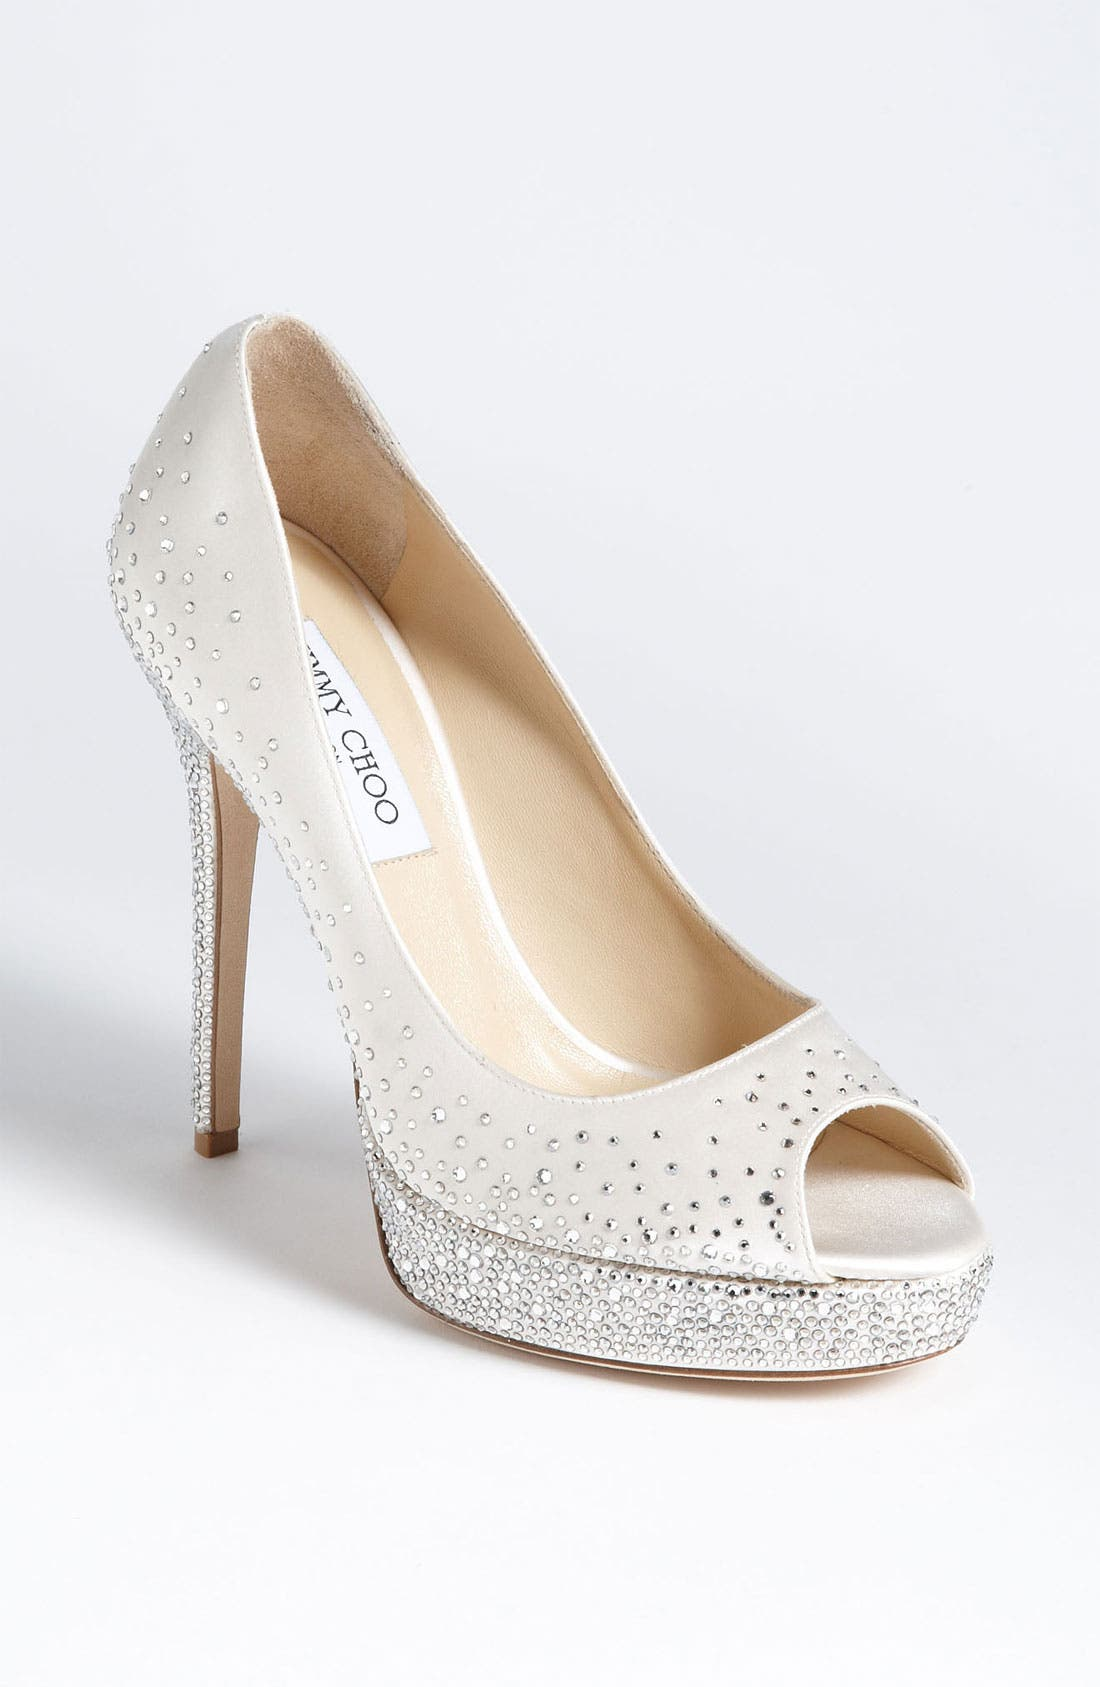 Alternate Image 1 Selected - Jimmy Choo 'Salt' Pump